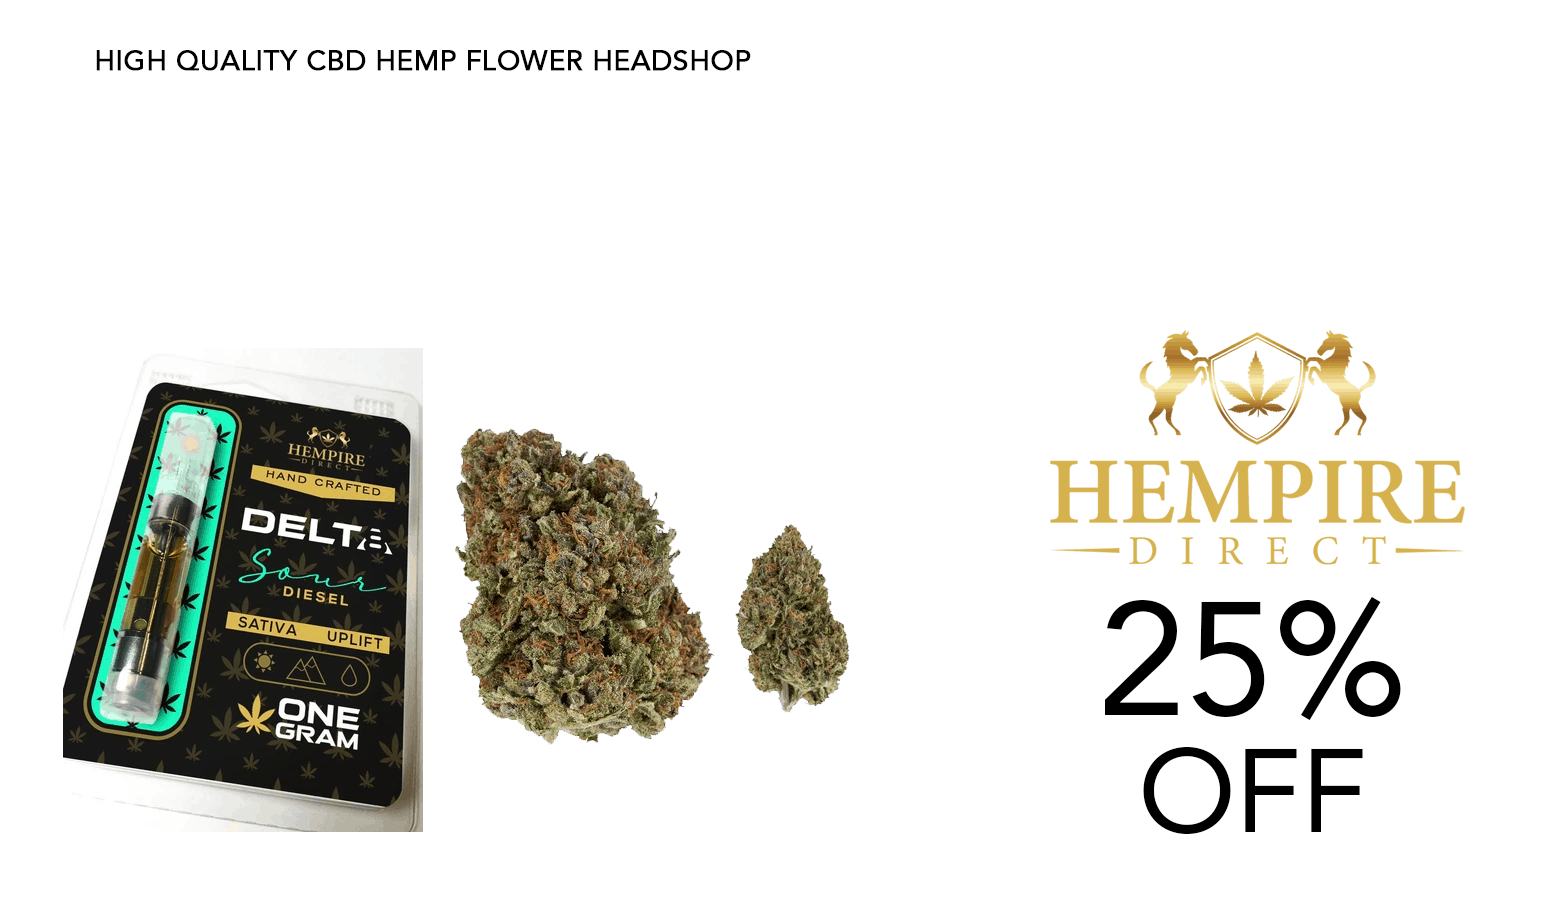 Hempire Direct CBD Coupon Code 25 Percent Off Discount